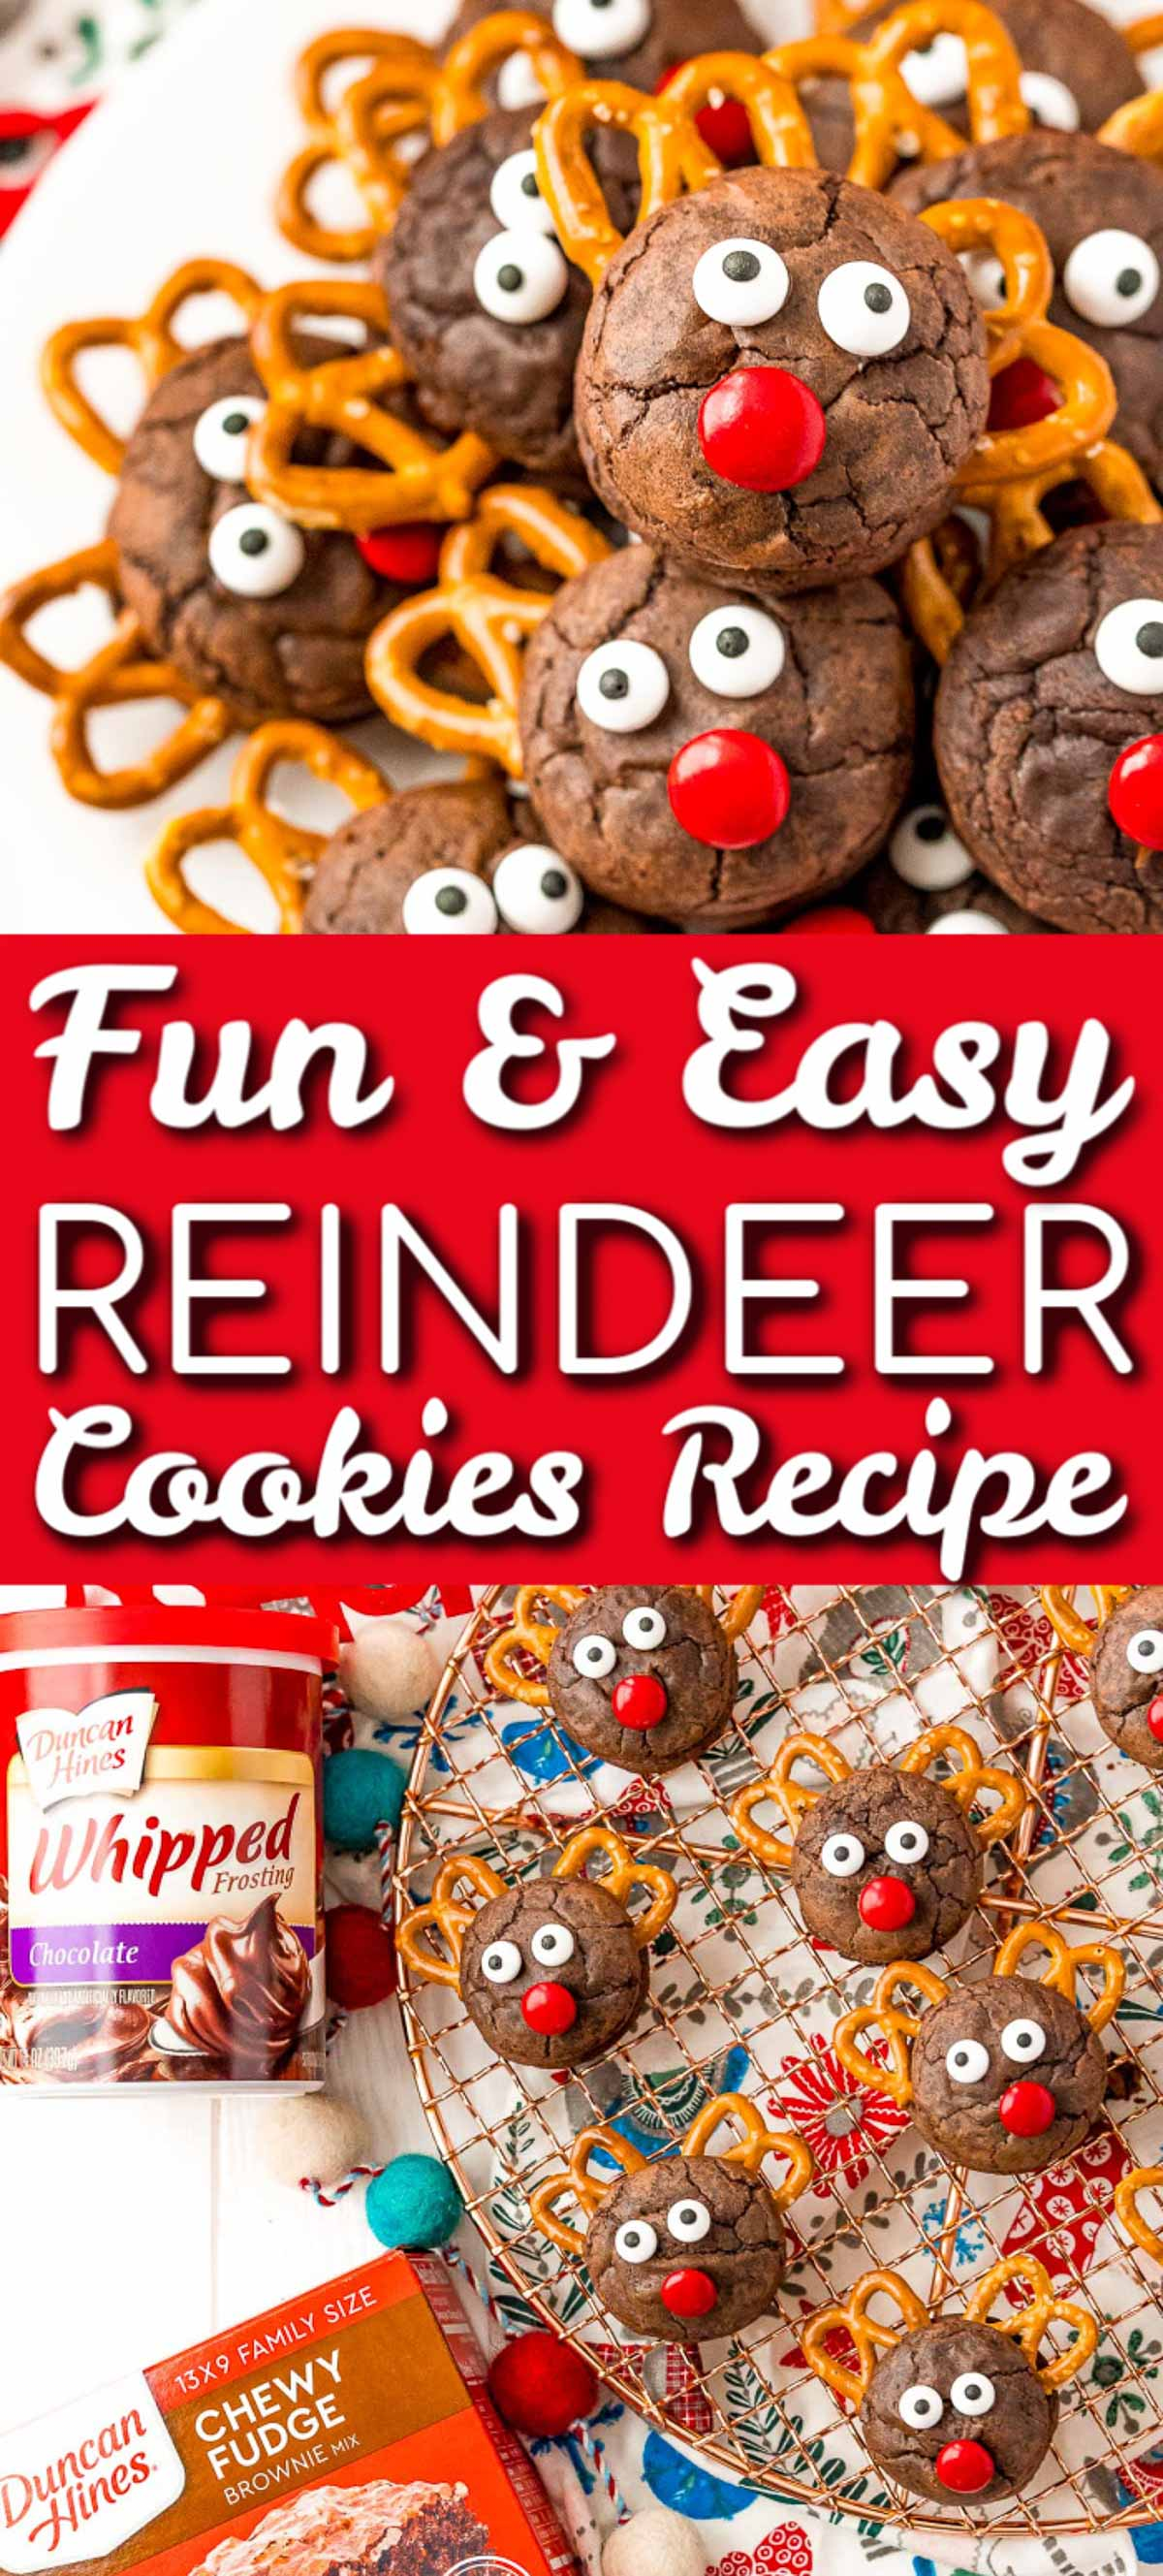 Reindeer Cookies are a festive recipe made with brownie sandwich cookies, frosting, pretzels, chocolate candies, and candy eyes! The best part about these treats is the whole family can help with the decorating! via @sugarandsoulco